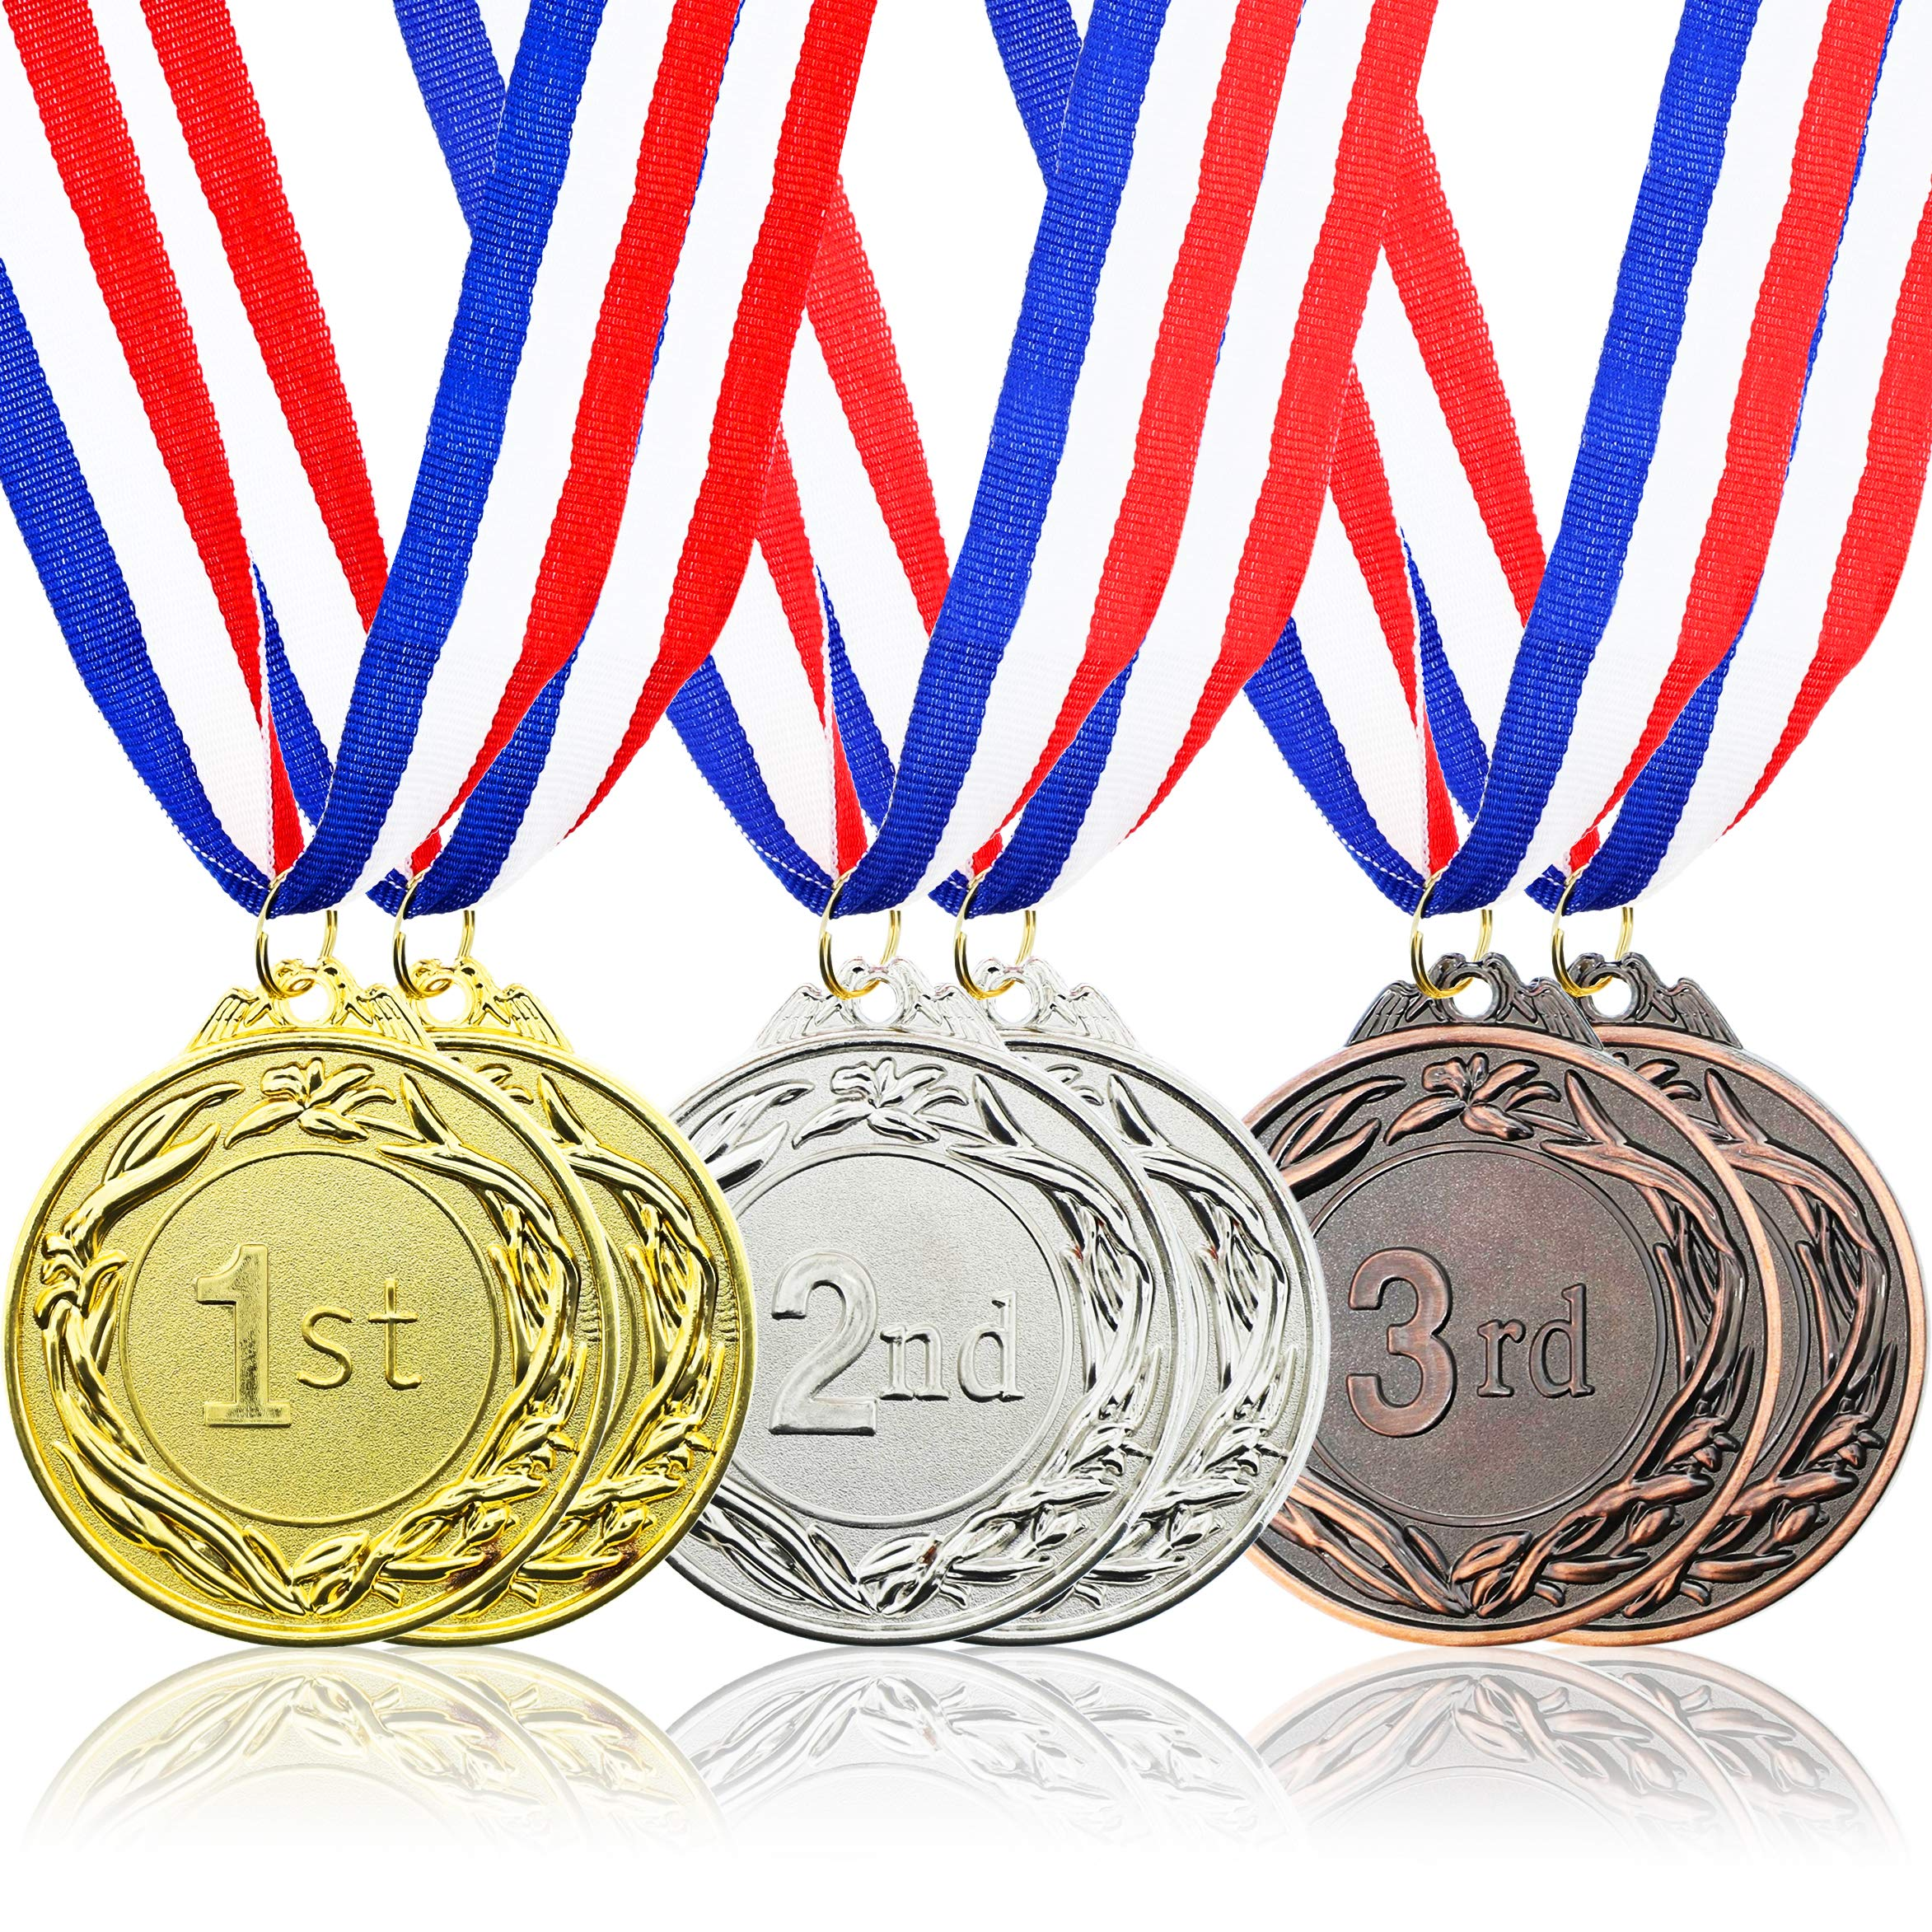 Juvale 6-Piece Set Metal Olympic Style Award Medals with Ribbons in Gold, Silver, and Bronze by Juvale